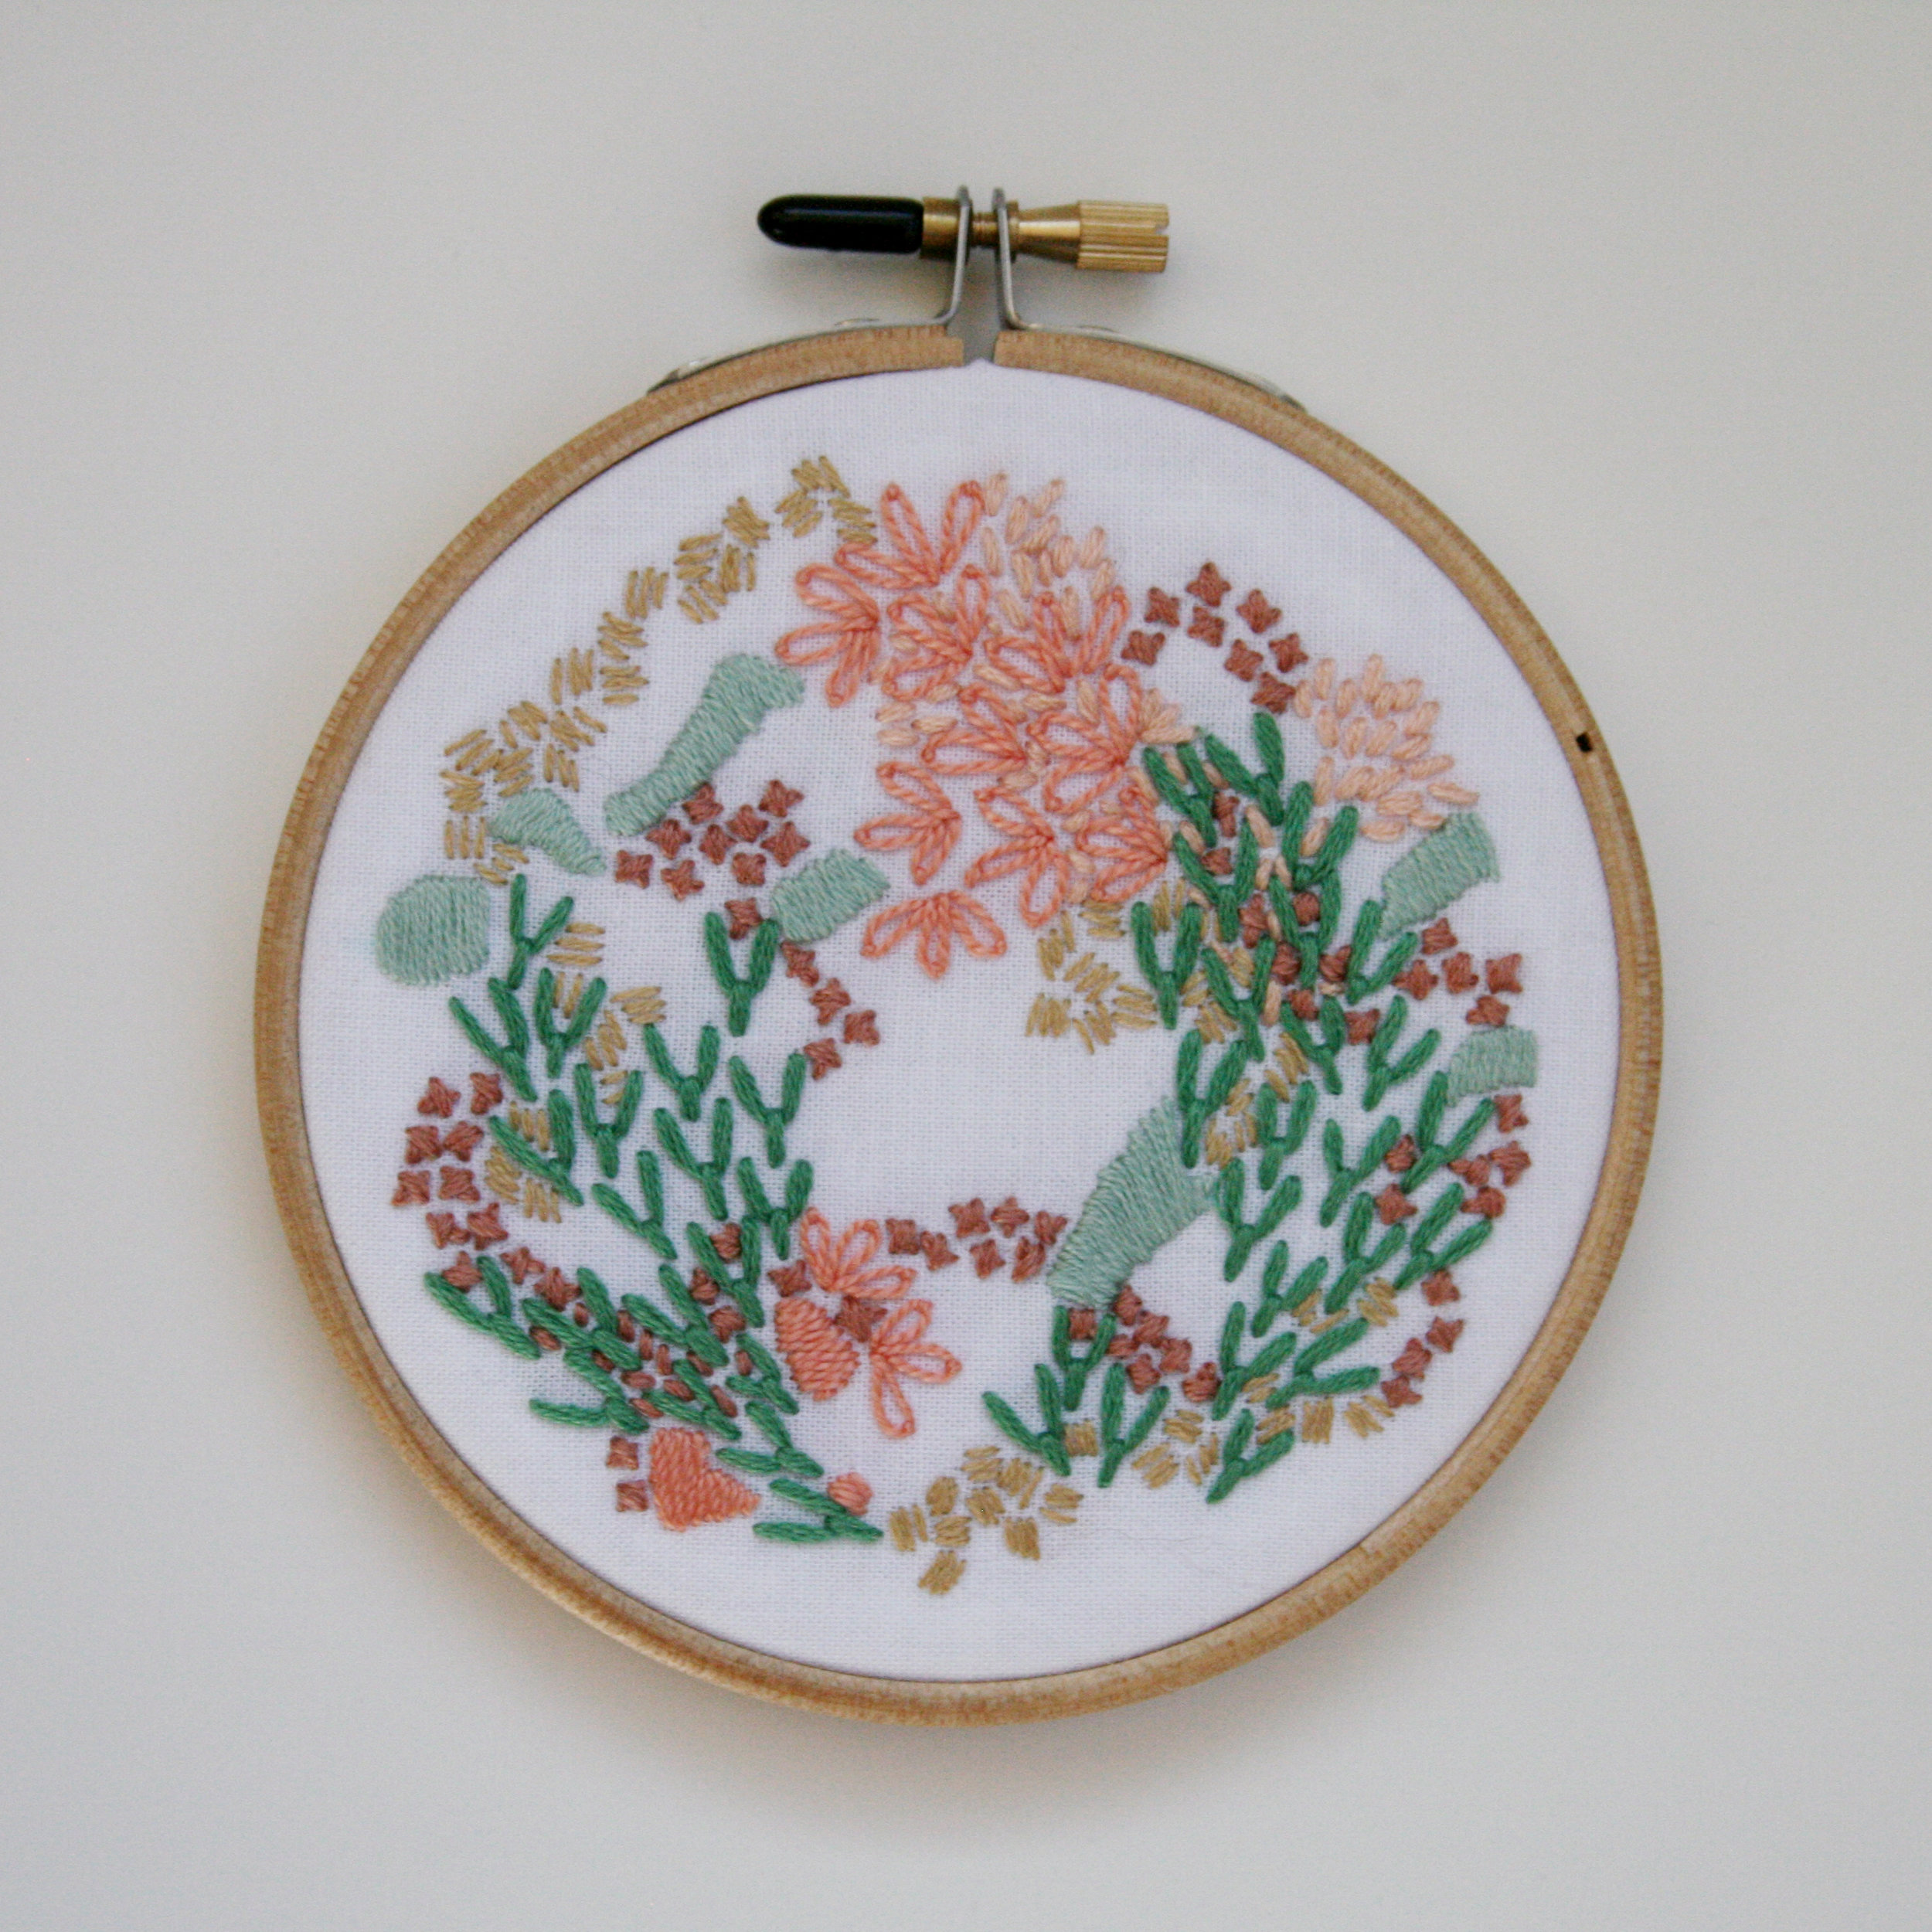 Embroidery 9 - Peach and Green Abstract - 4 Inch.jpg